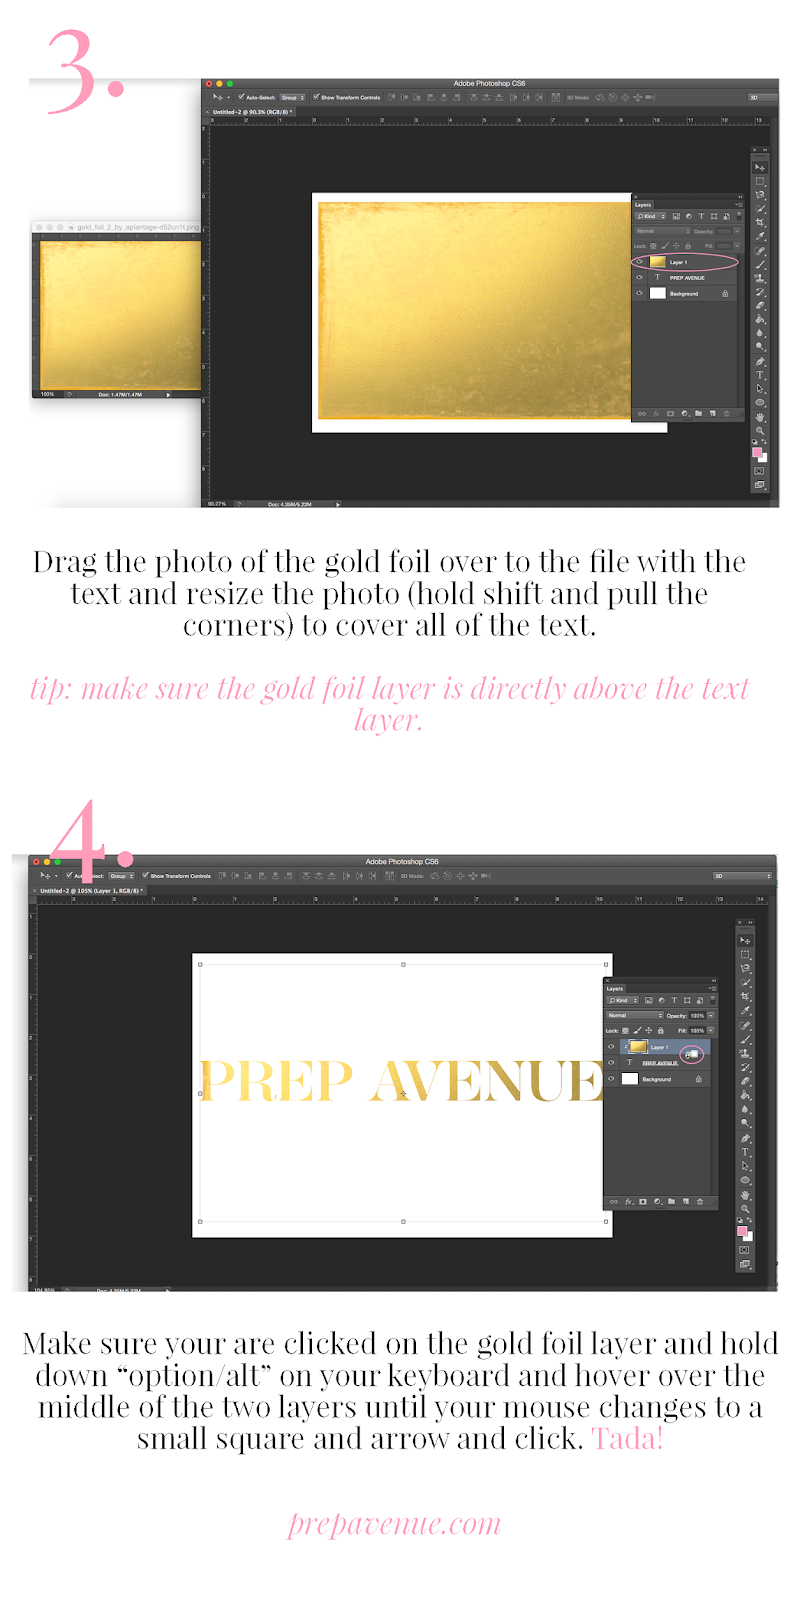 How to Make Gold Foil Letters on Photoshop - Prep Avenue